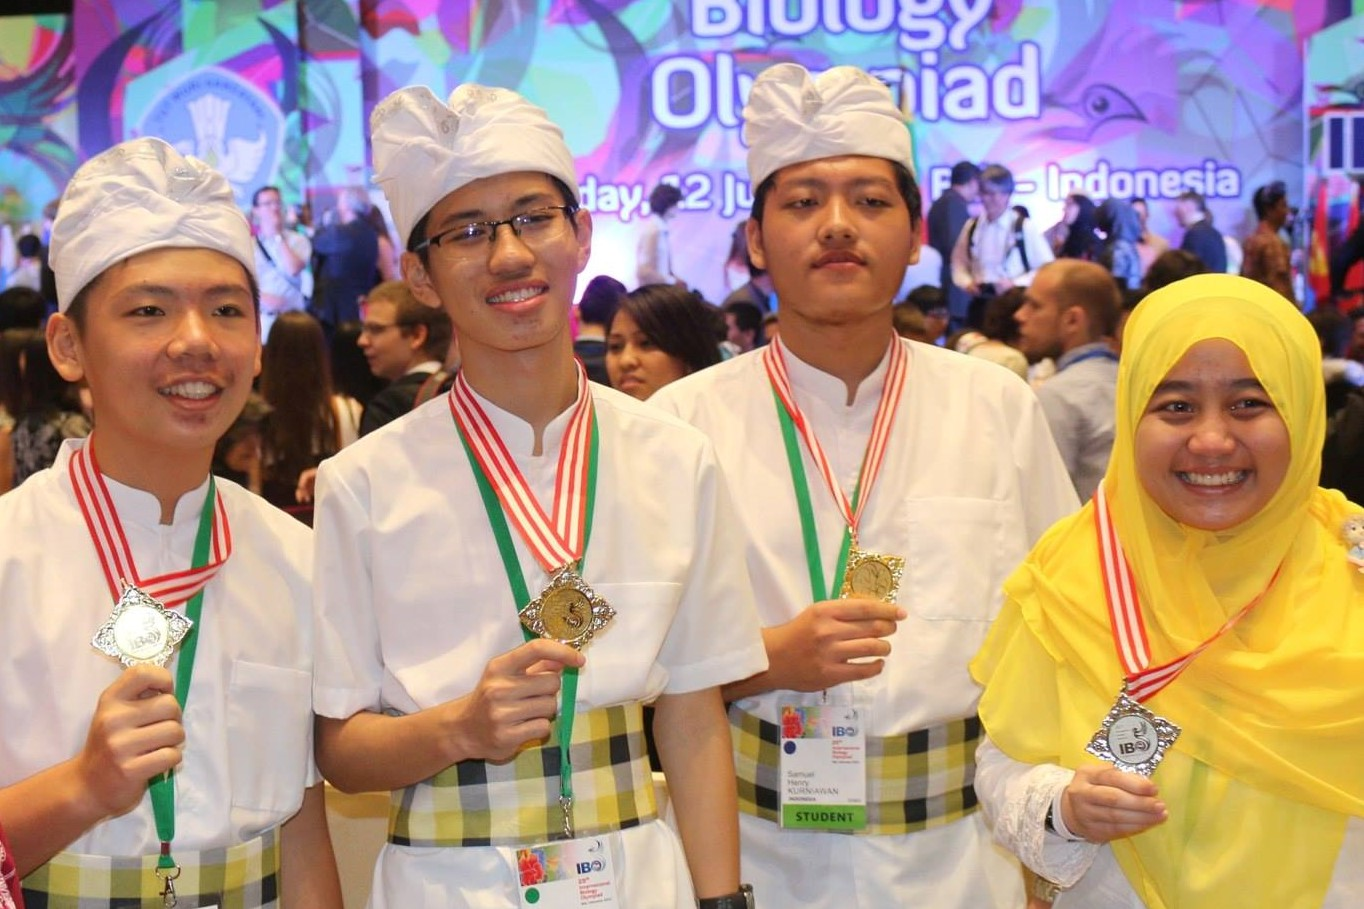 Indonesian delegates at the International Biology Olympiad 2014 award ceremony